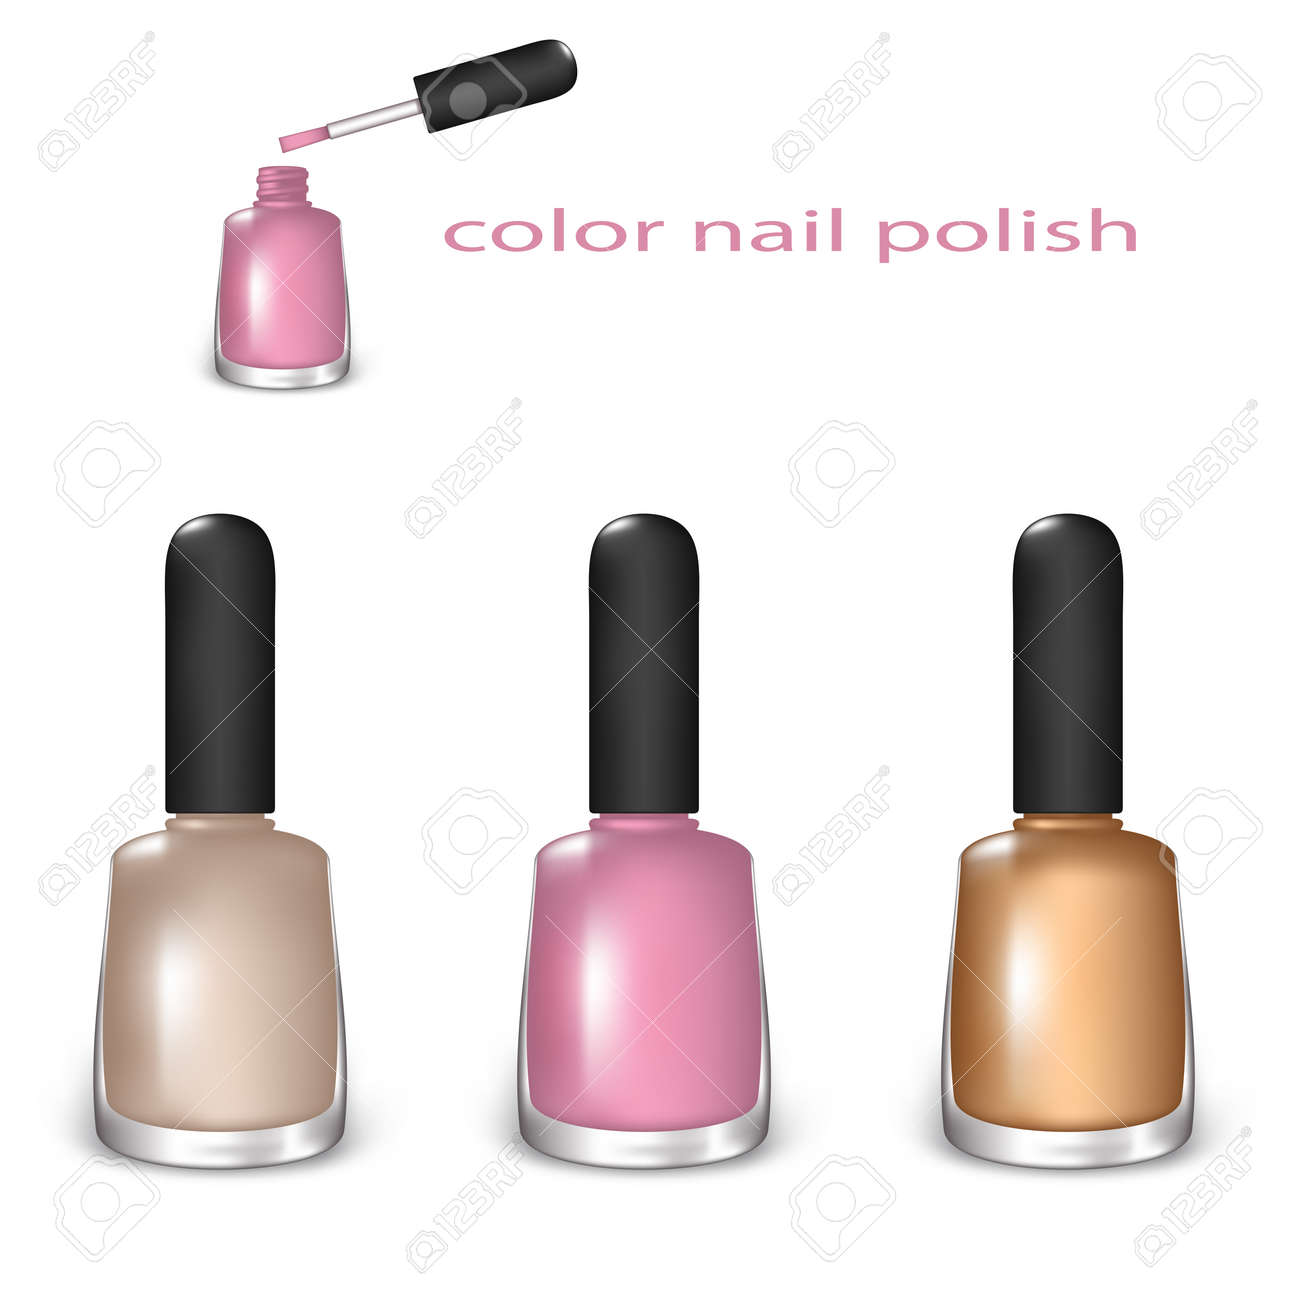 Set Of Color Nail Polish Beige Light Pink And Gold On A White